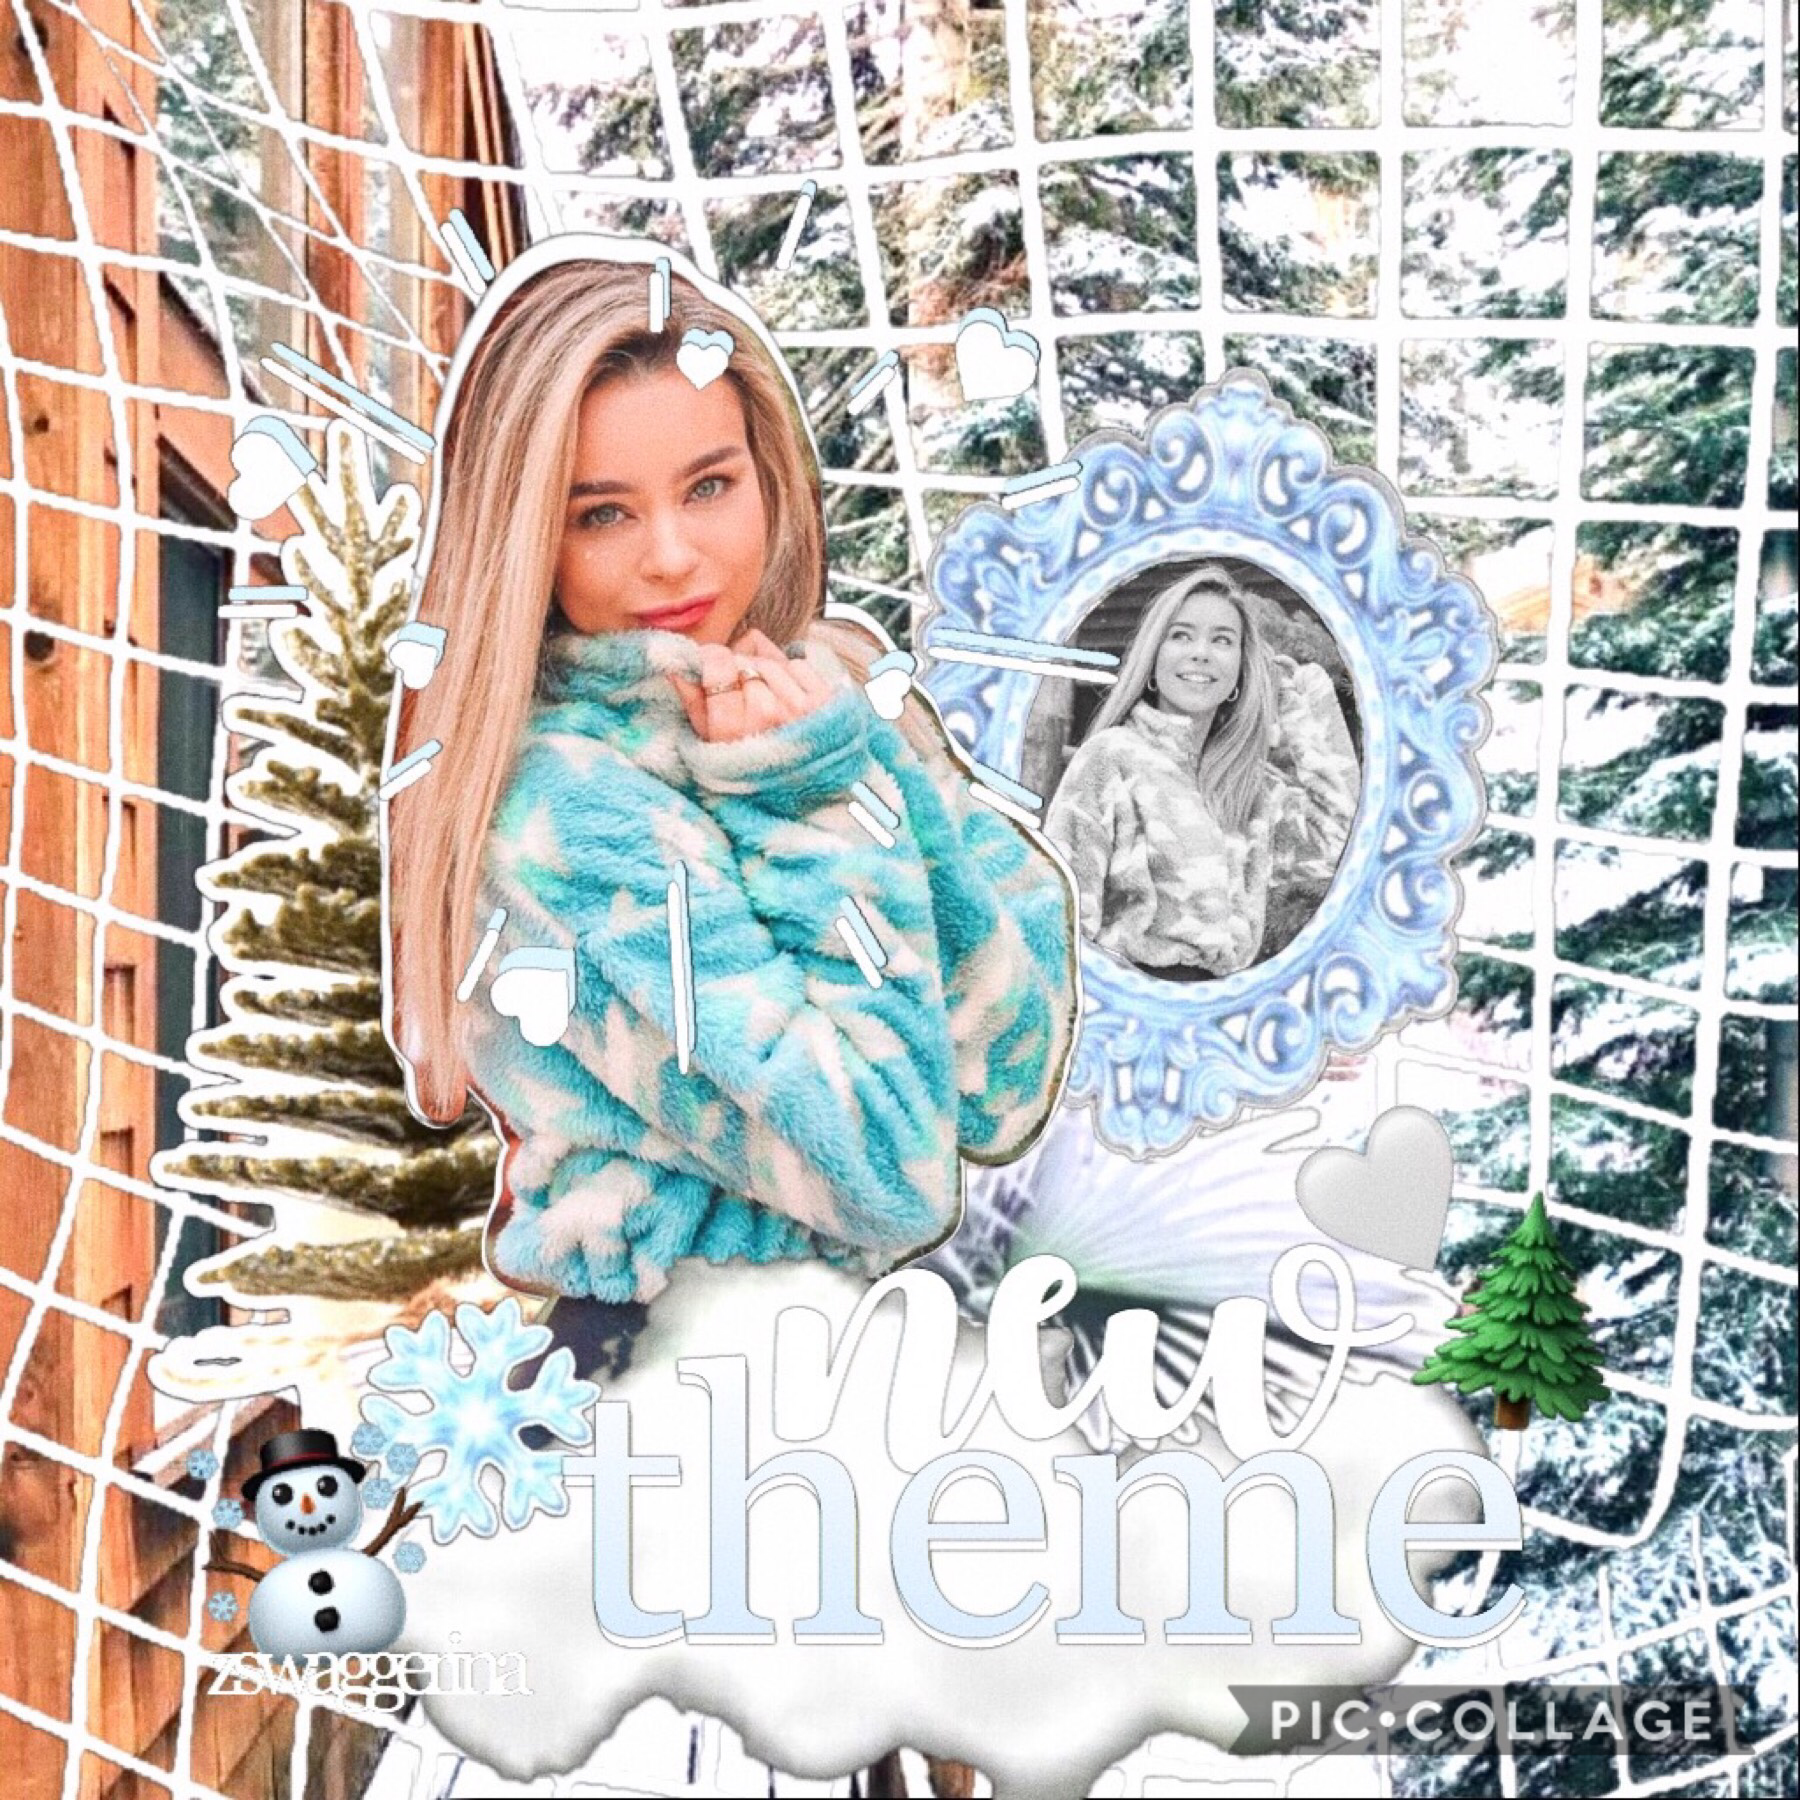 🤍 yooooo new theme y'all #winter2019 ☃️❄️🍪🥛🌲🌨🌬🌫🦌